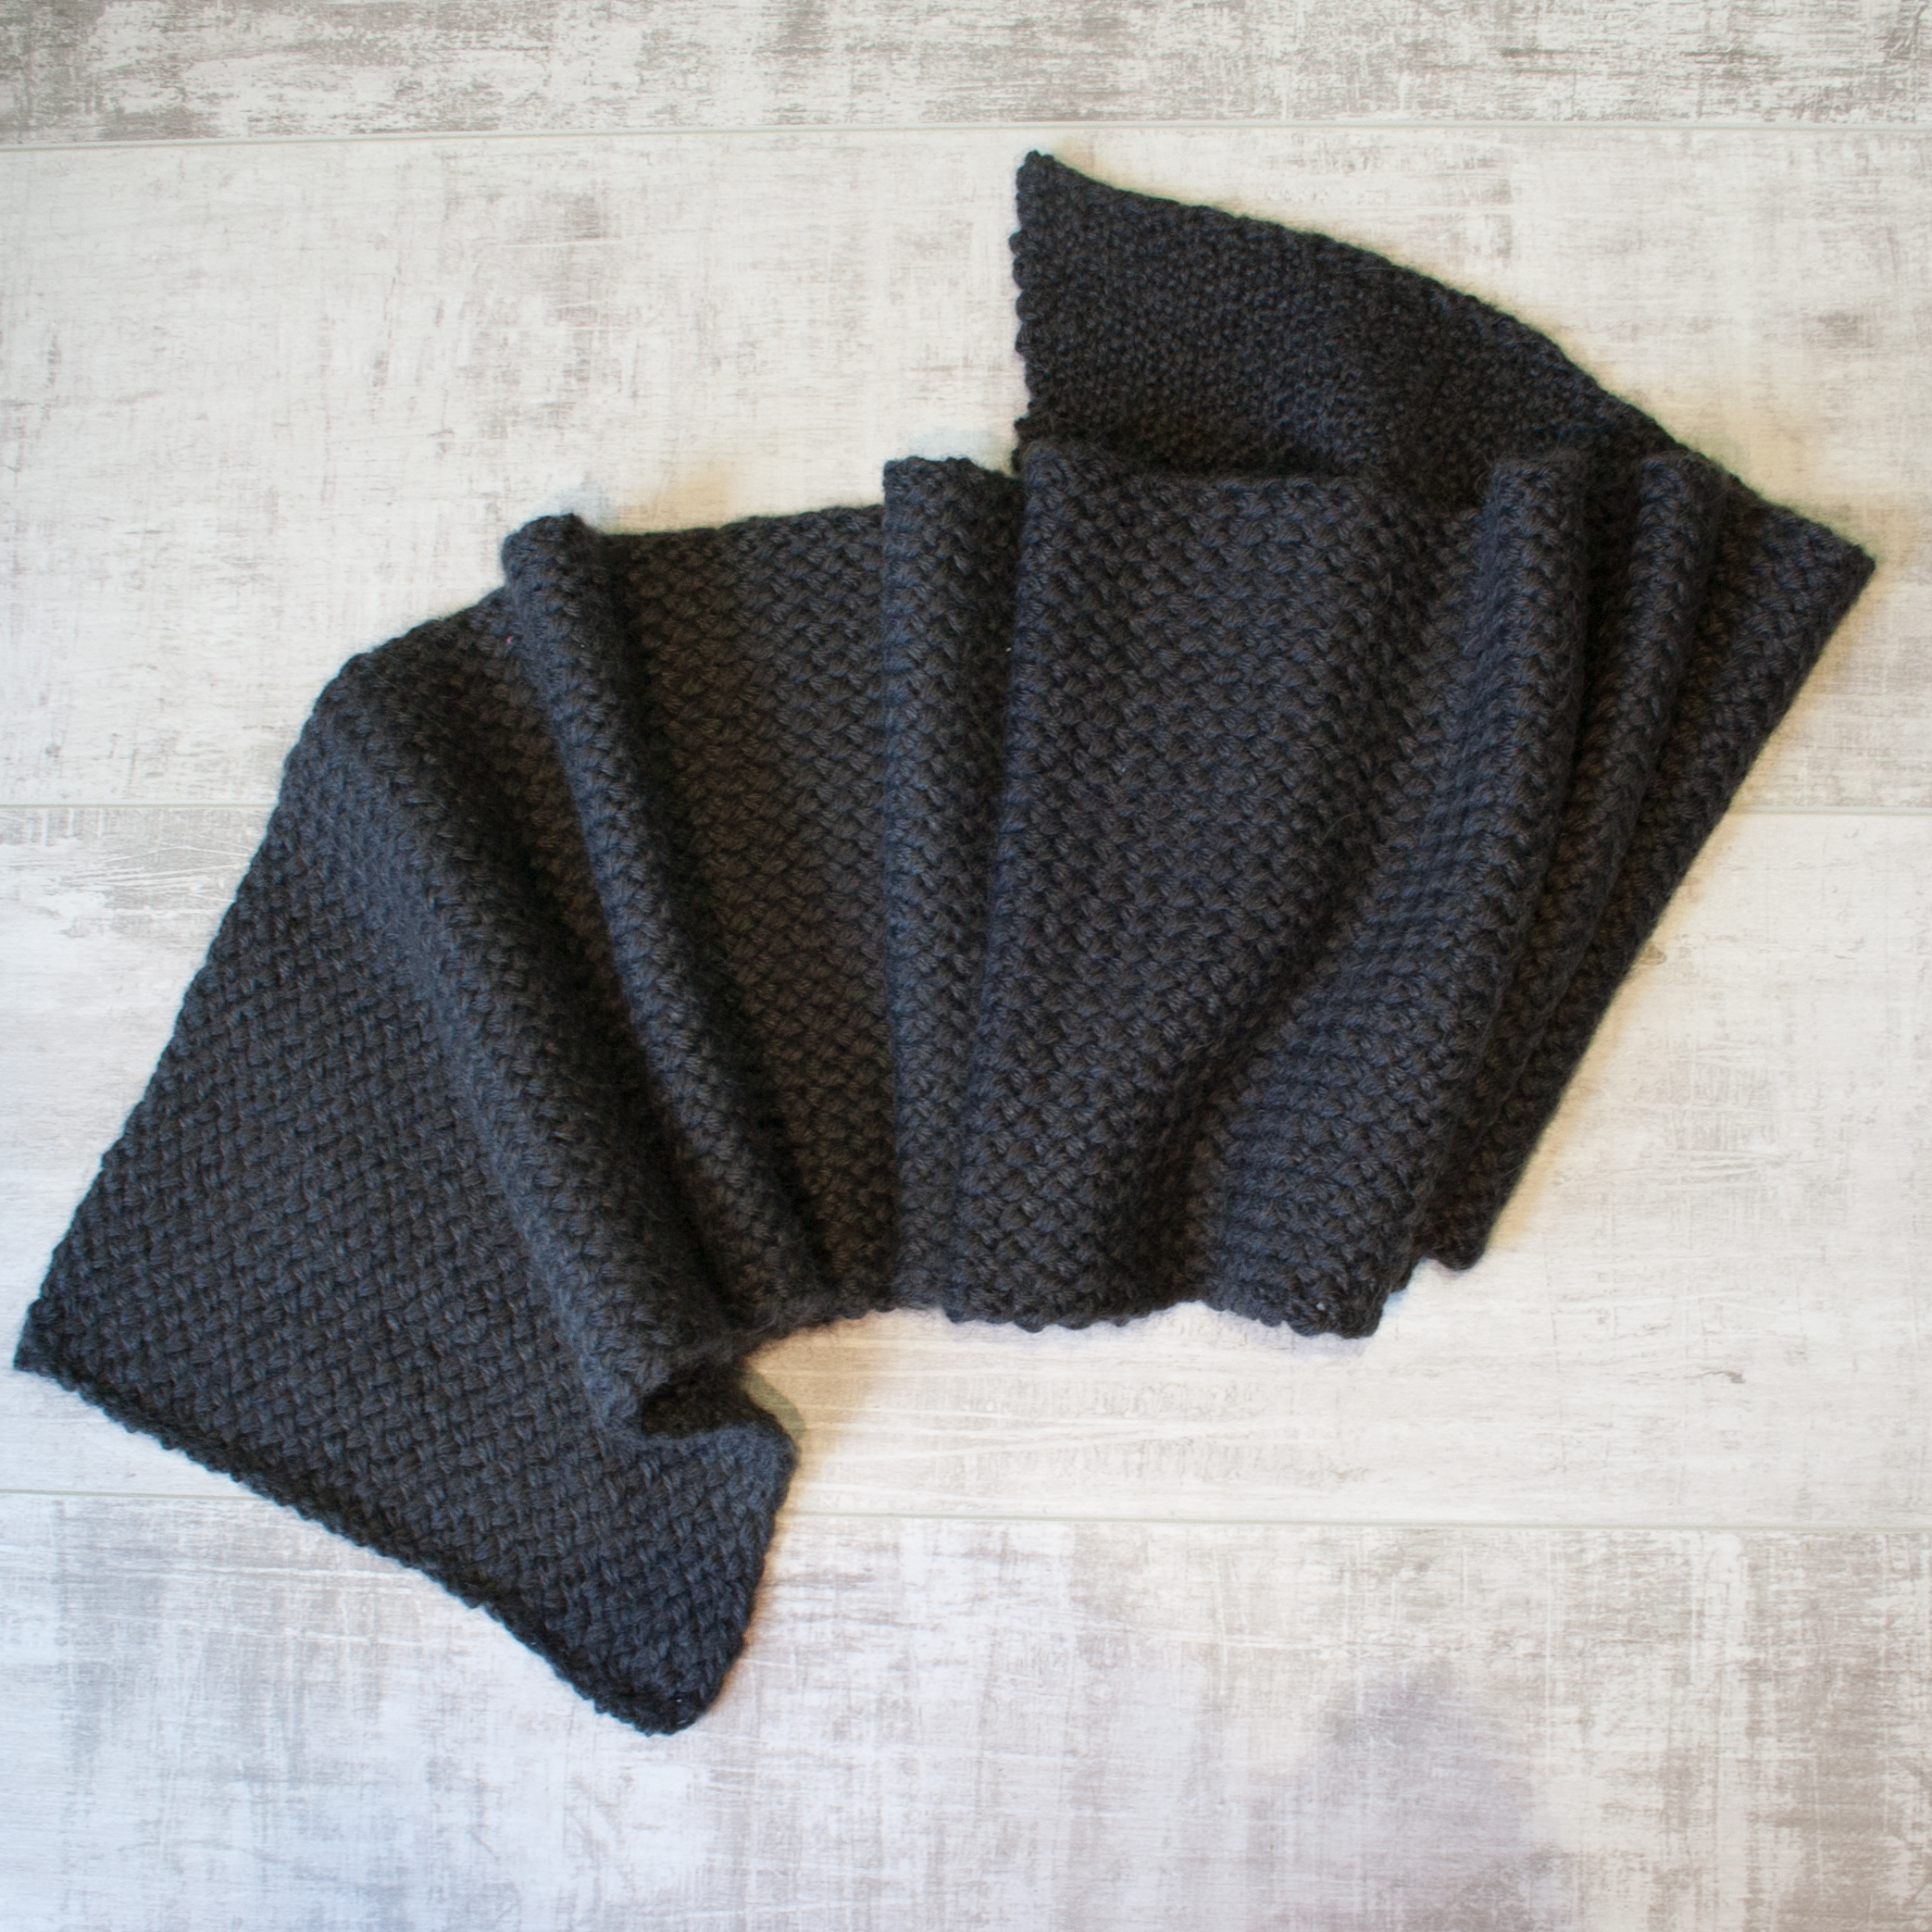 The 285 Scarf in Coal